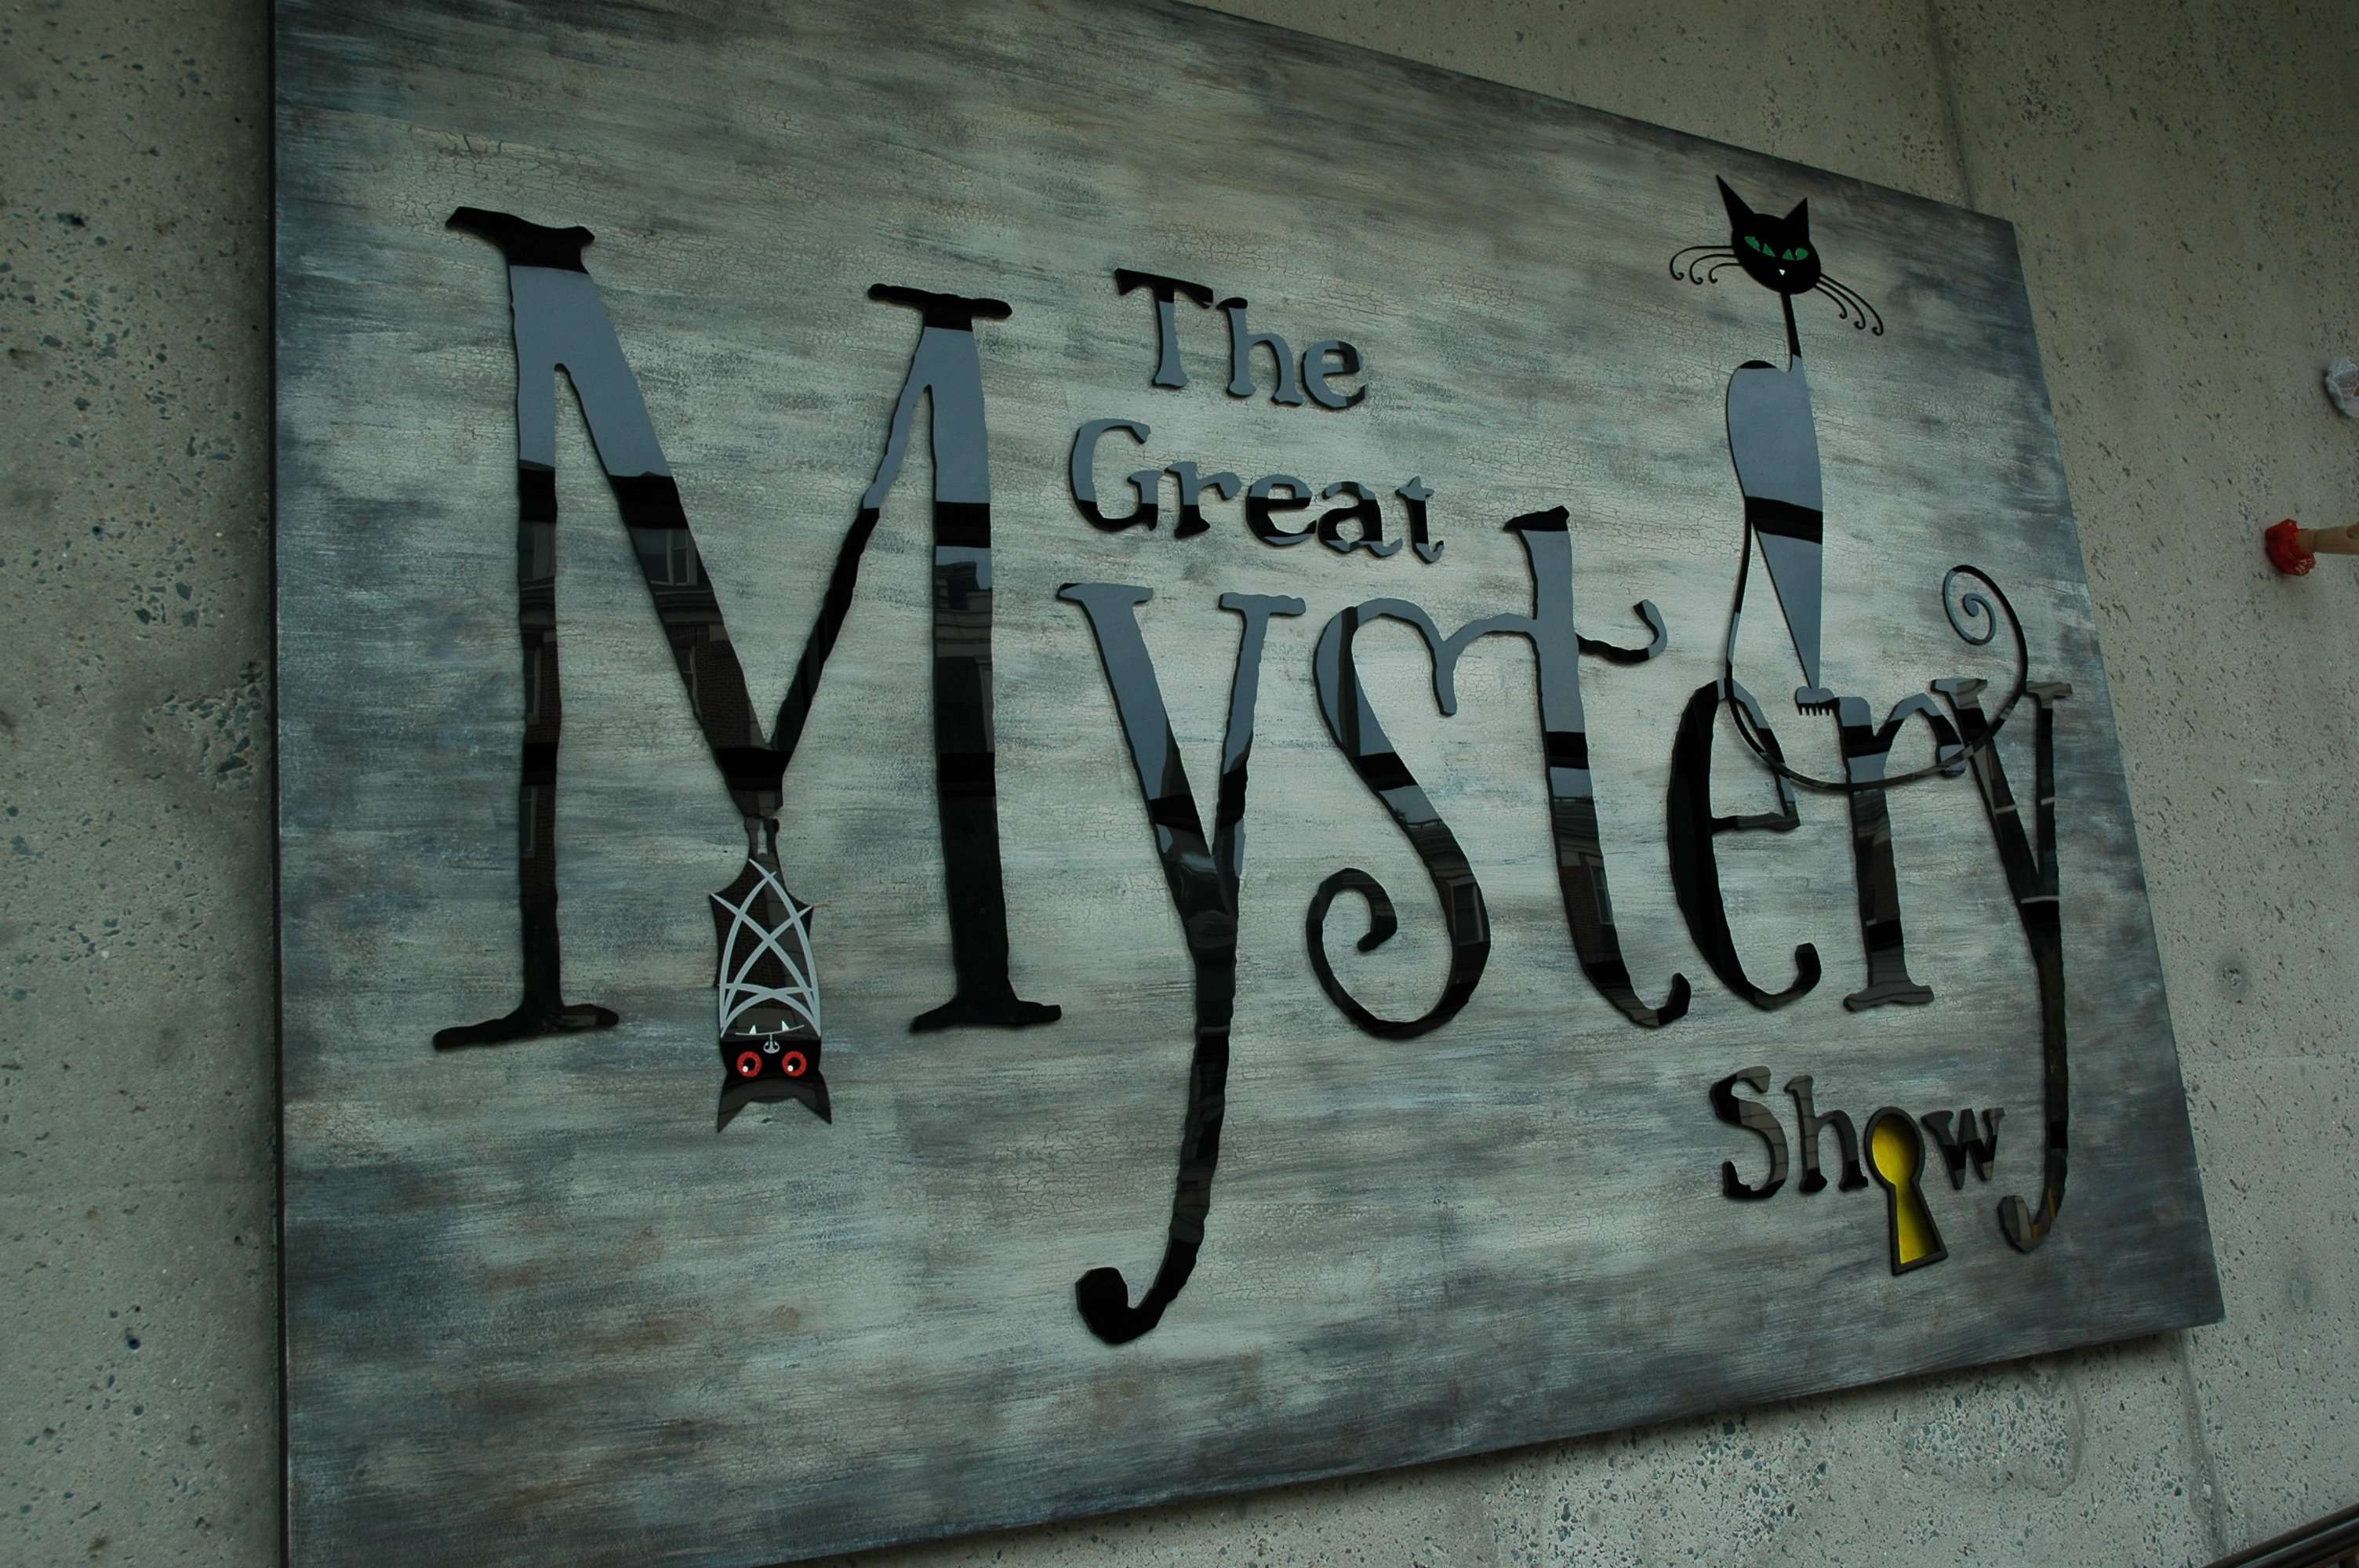 The Great Mystery Show at the American Visionary Art Museum